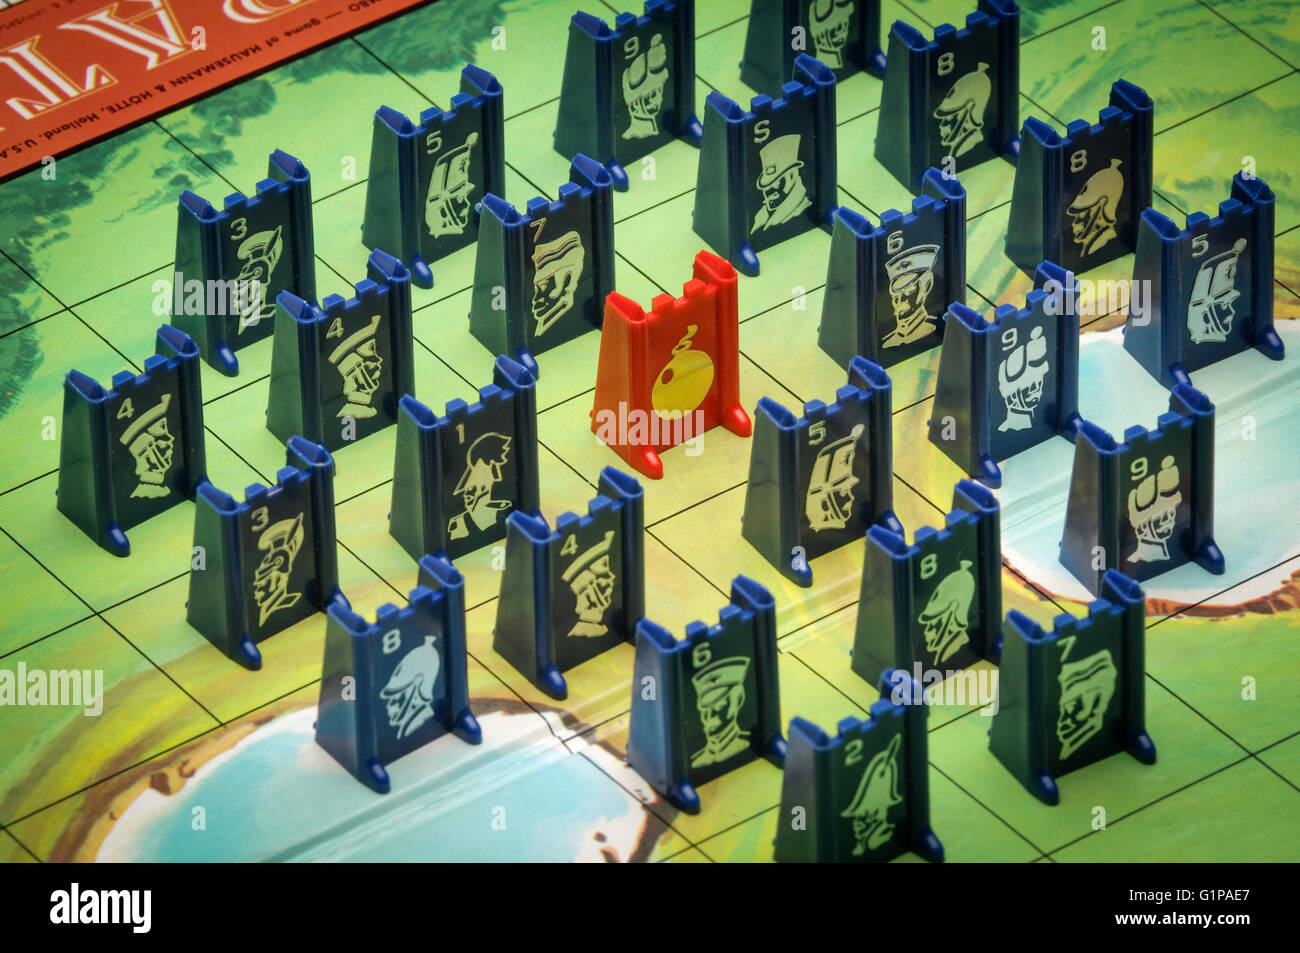 stratego board game with pieces stock photo 104368047 alamy